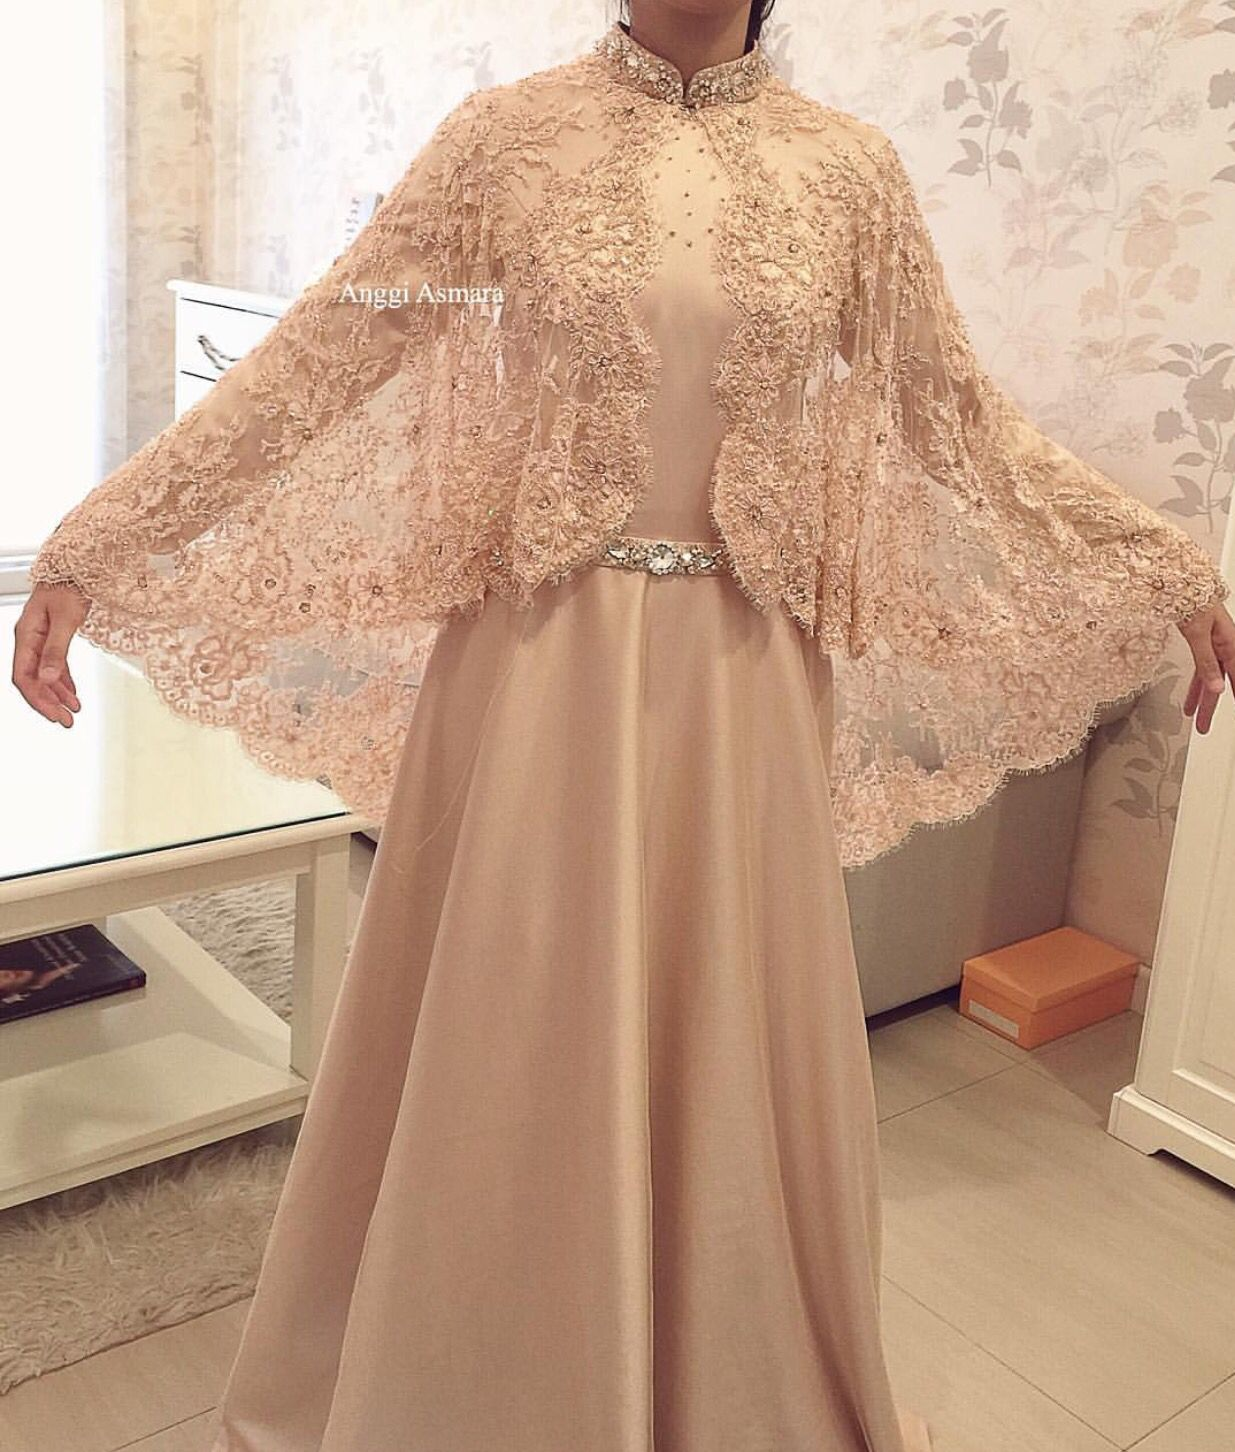 Lace Cape Dress Source By Anggiasmara Fashion In 2018